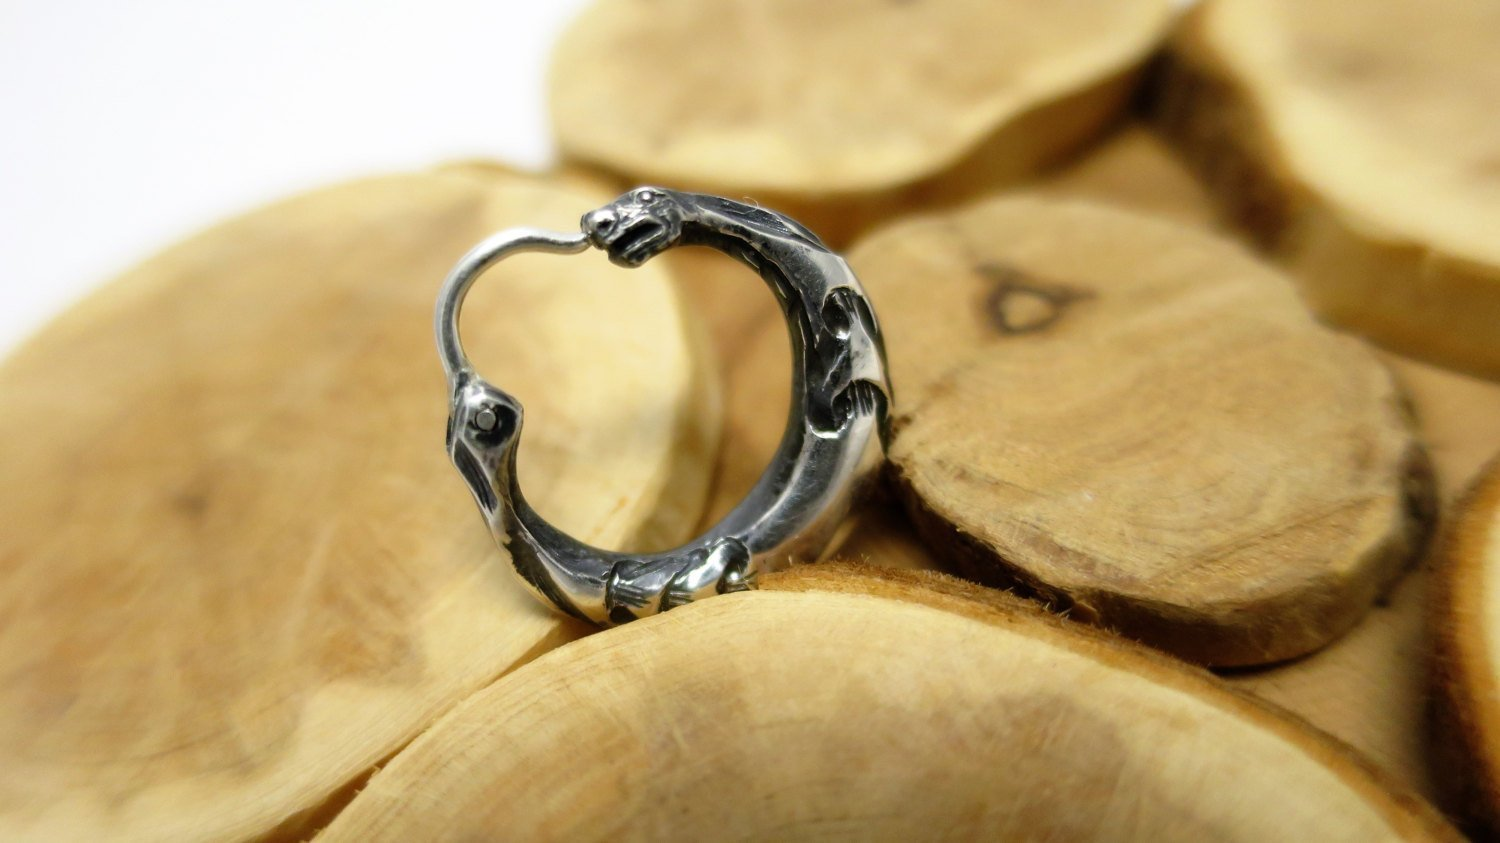 4558b8e6161ab Hoop Earrings for Men: 10 Unique Men's Hoop Earrings | JewelryJealousy